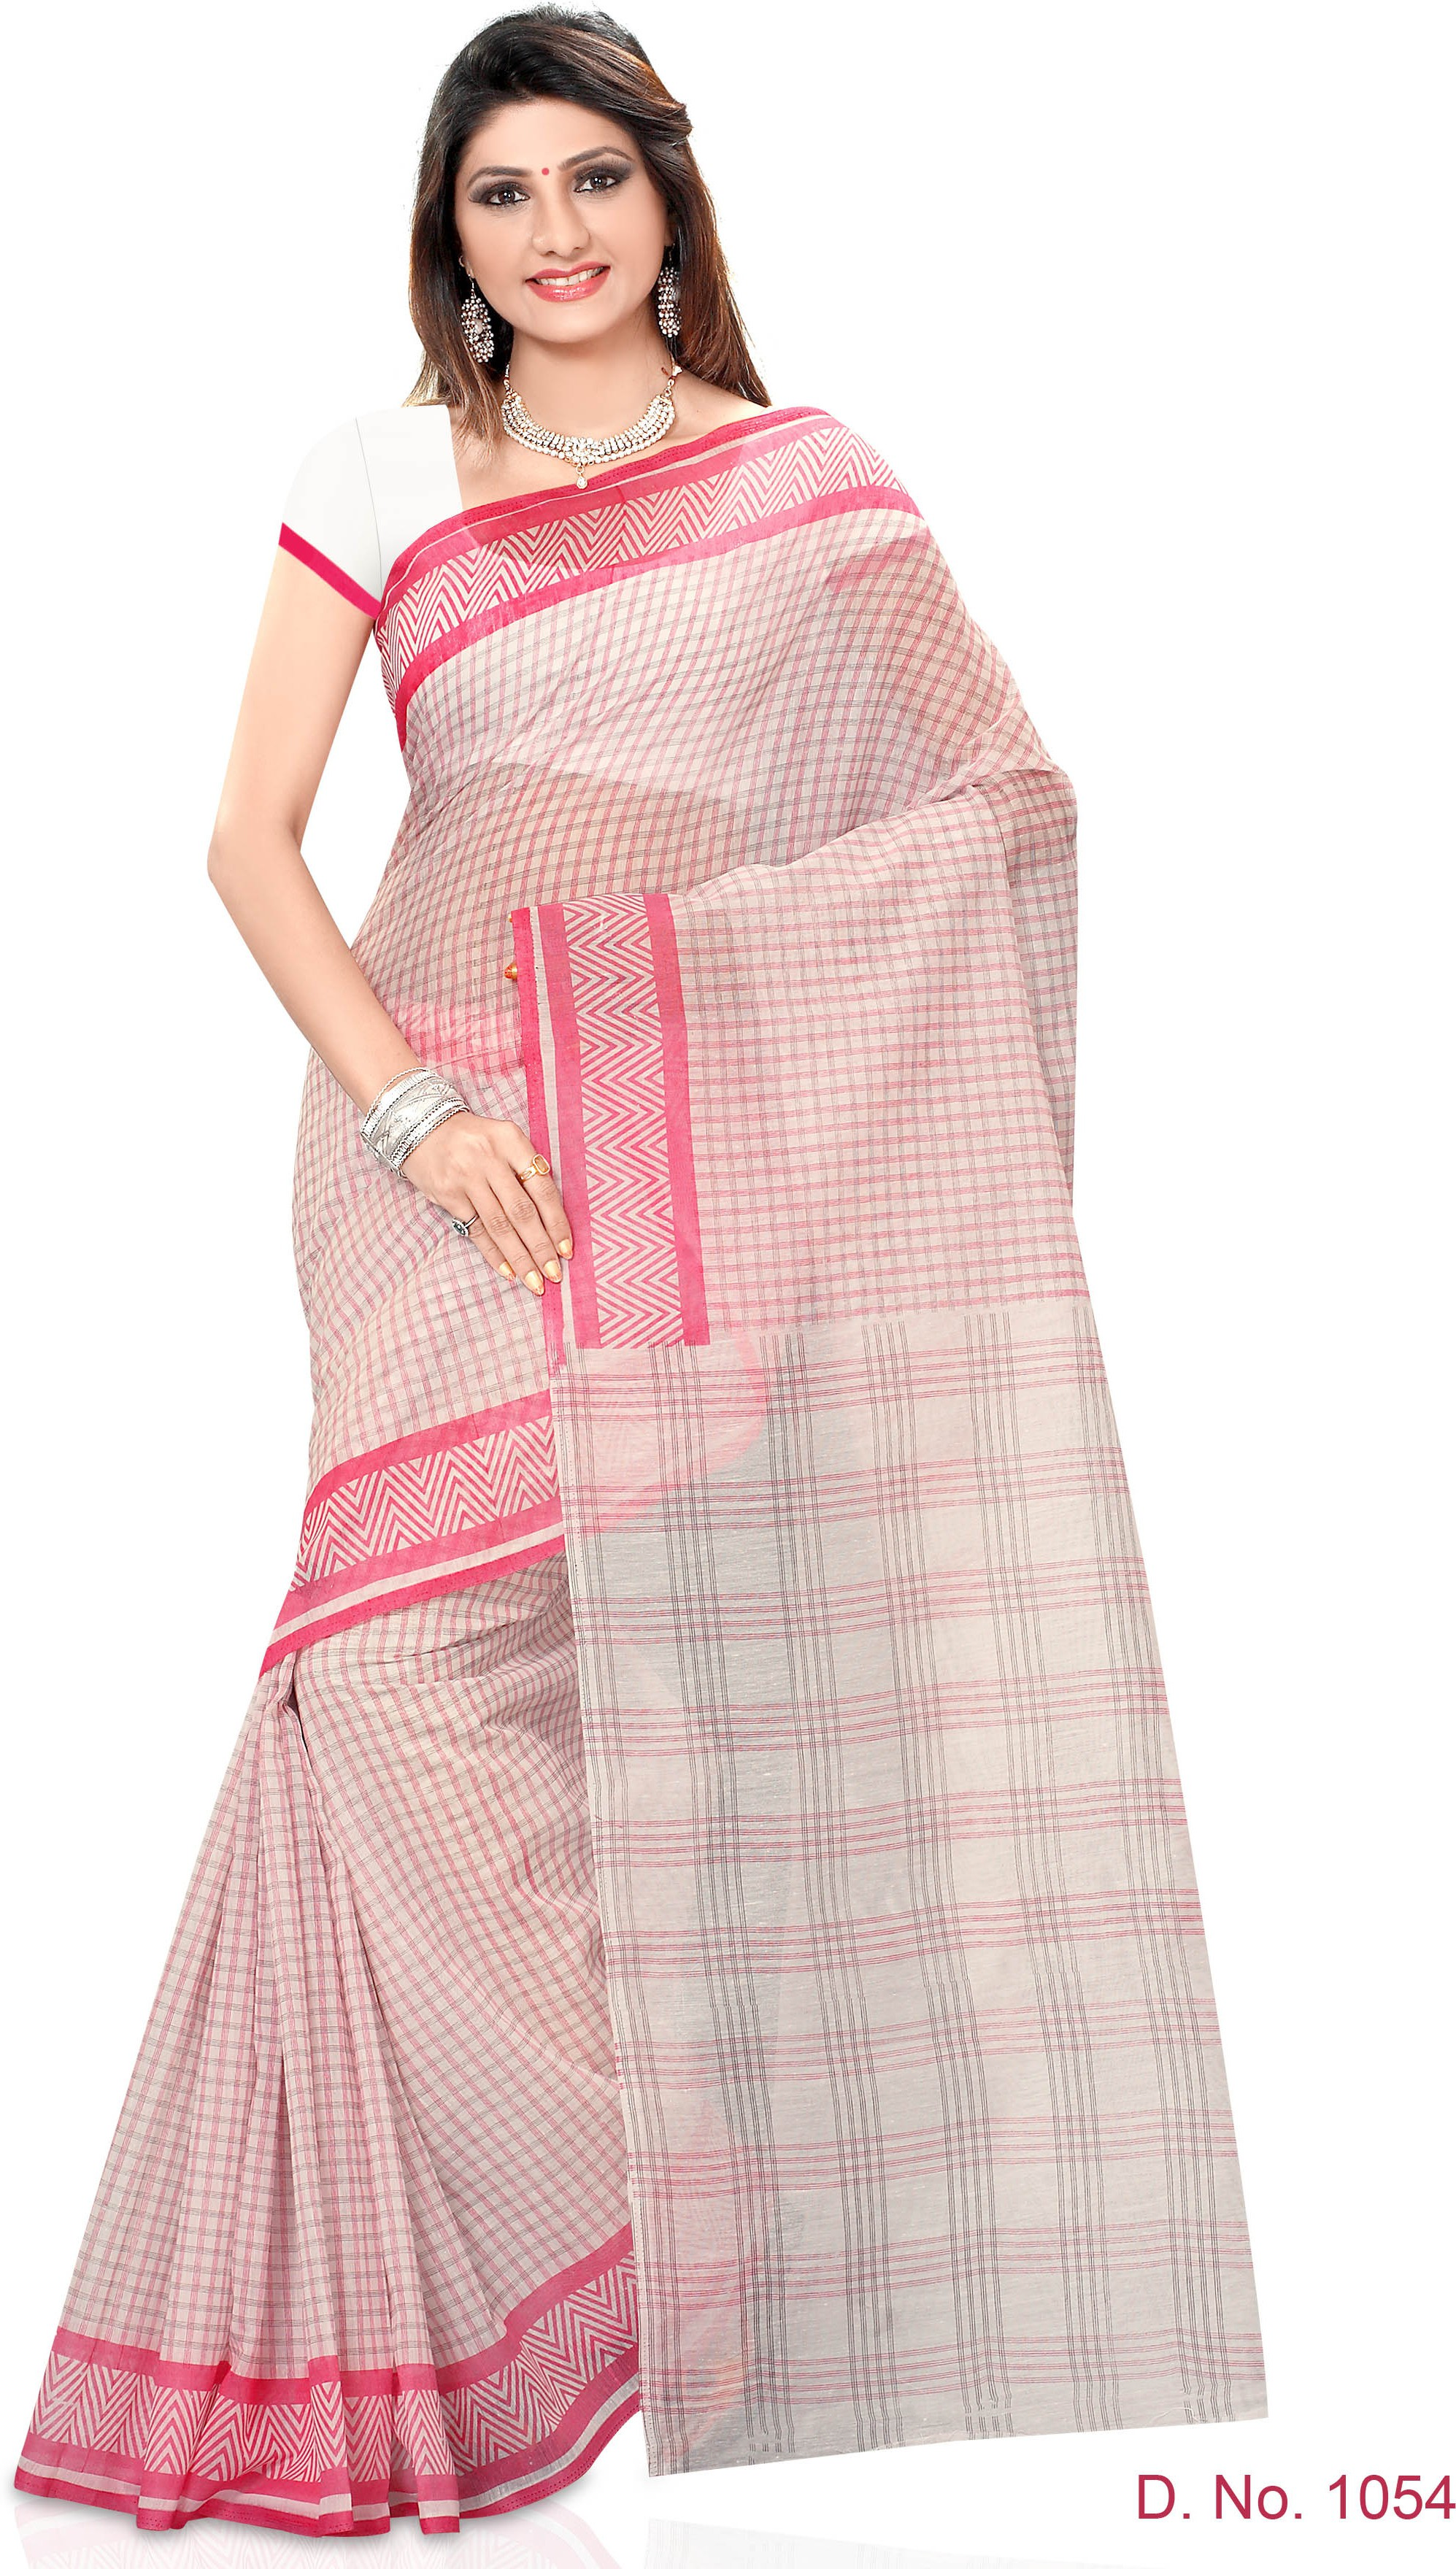 Indianbeauty Striped, Printed Fashion Cotton Sari(White, Pink)